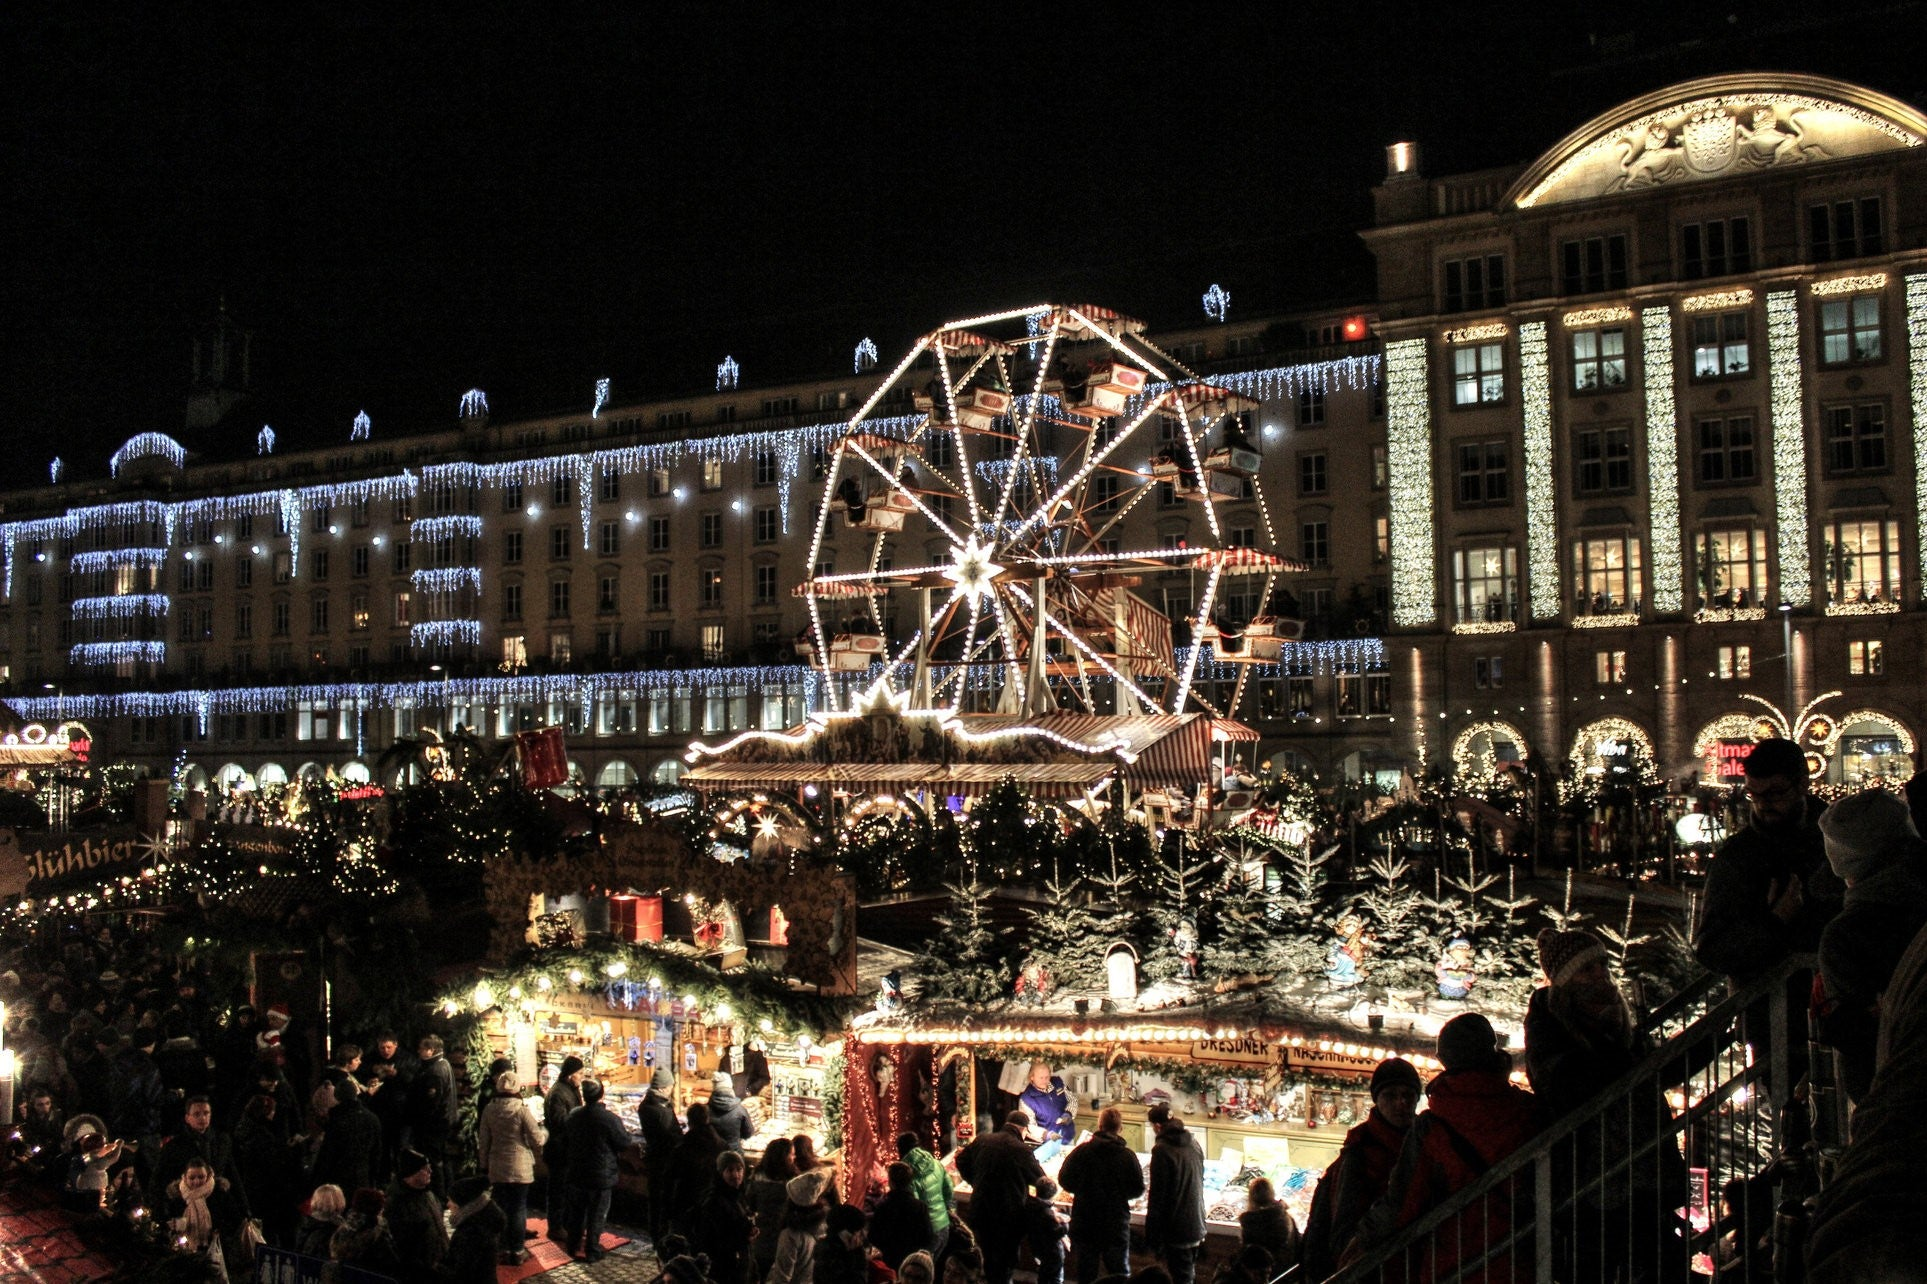 Which Country Hosts Striezelmarkt A Christmas Market Thats Been Held Since 1434.Christmas Markets To Visit This Noel Vember Vicarious Media